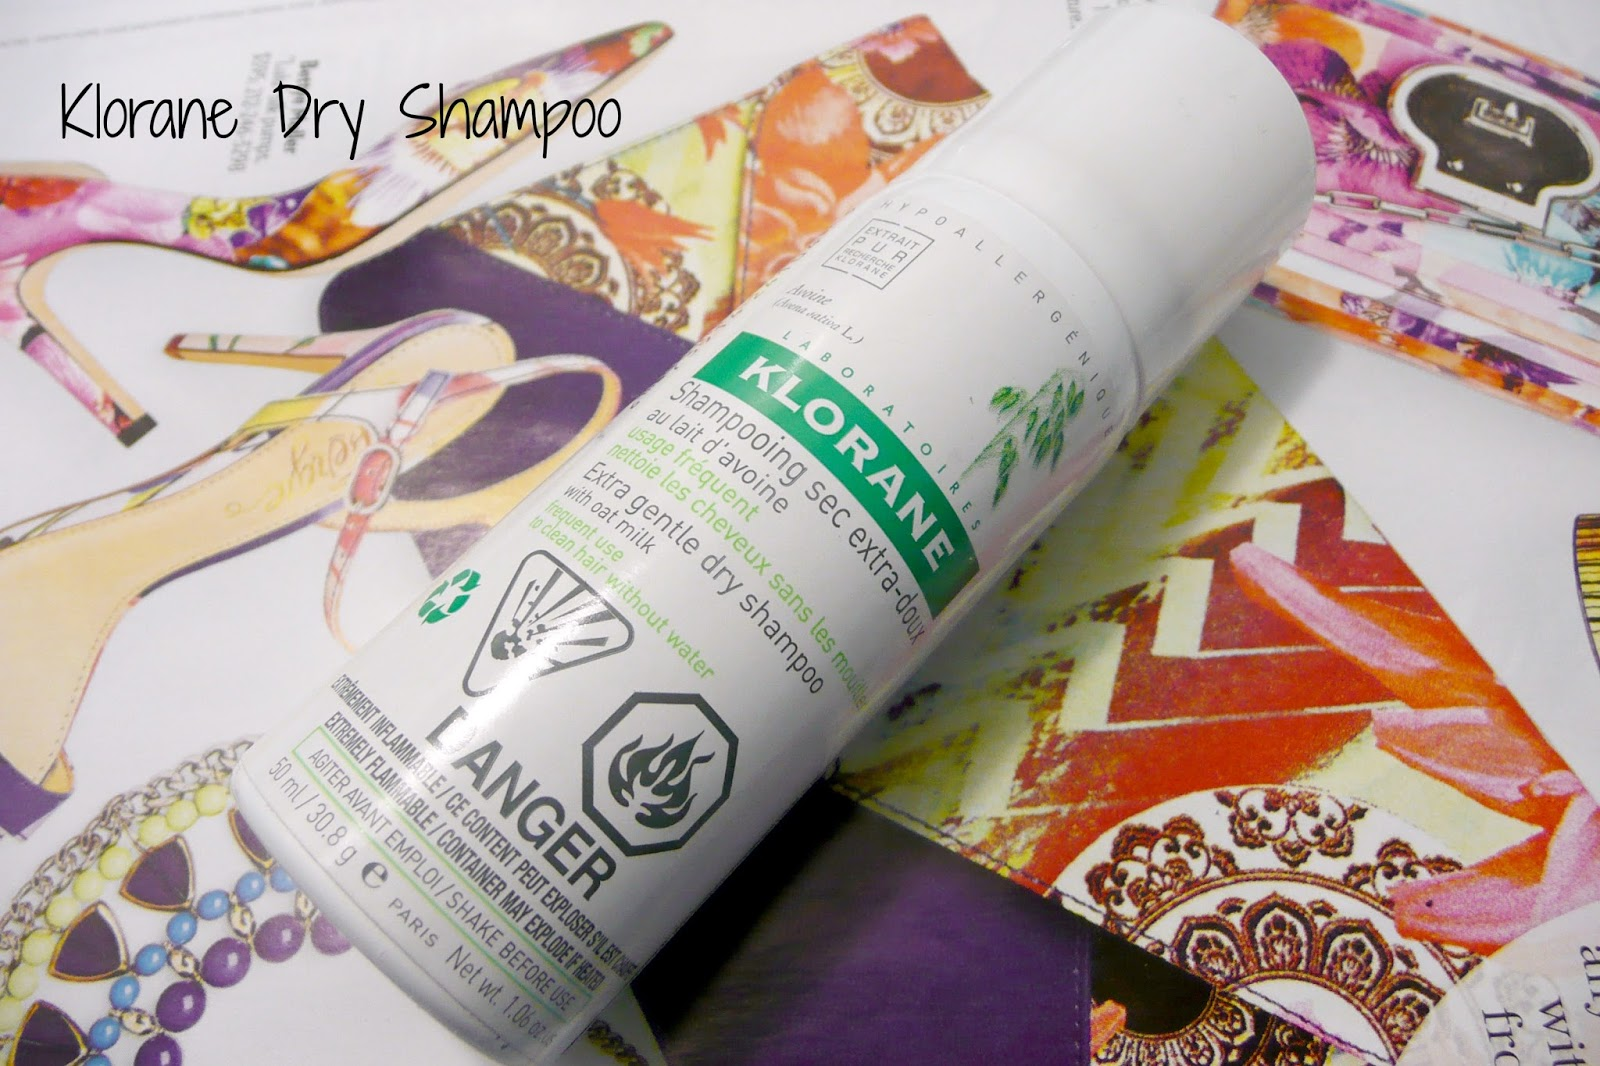 Klorane Dry Shampoo Review